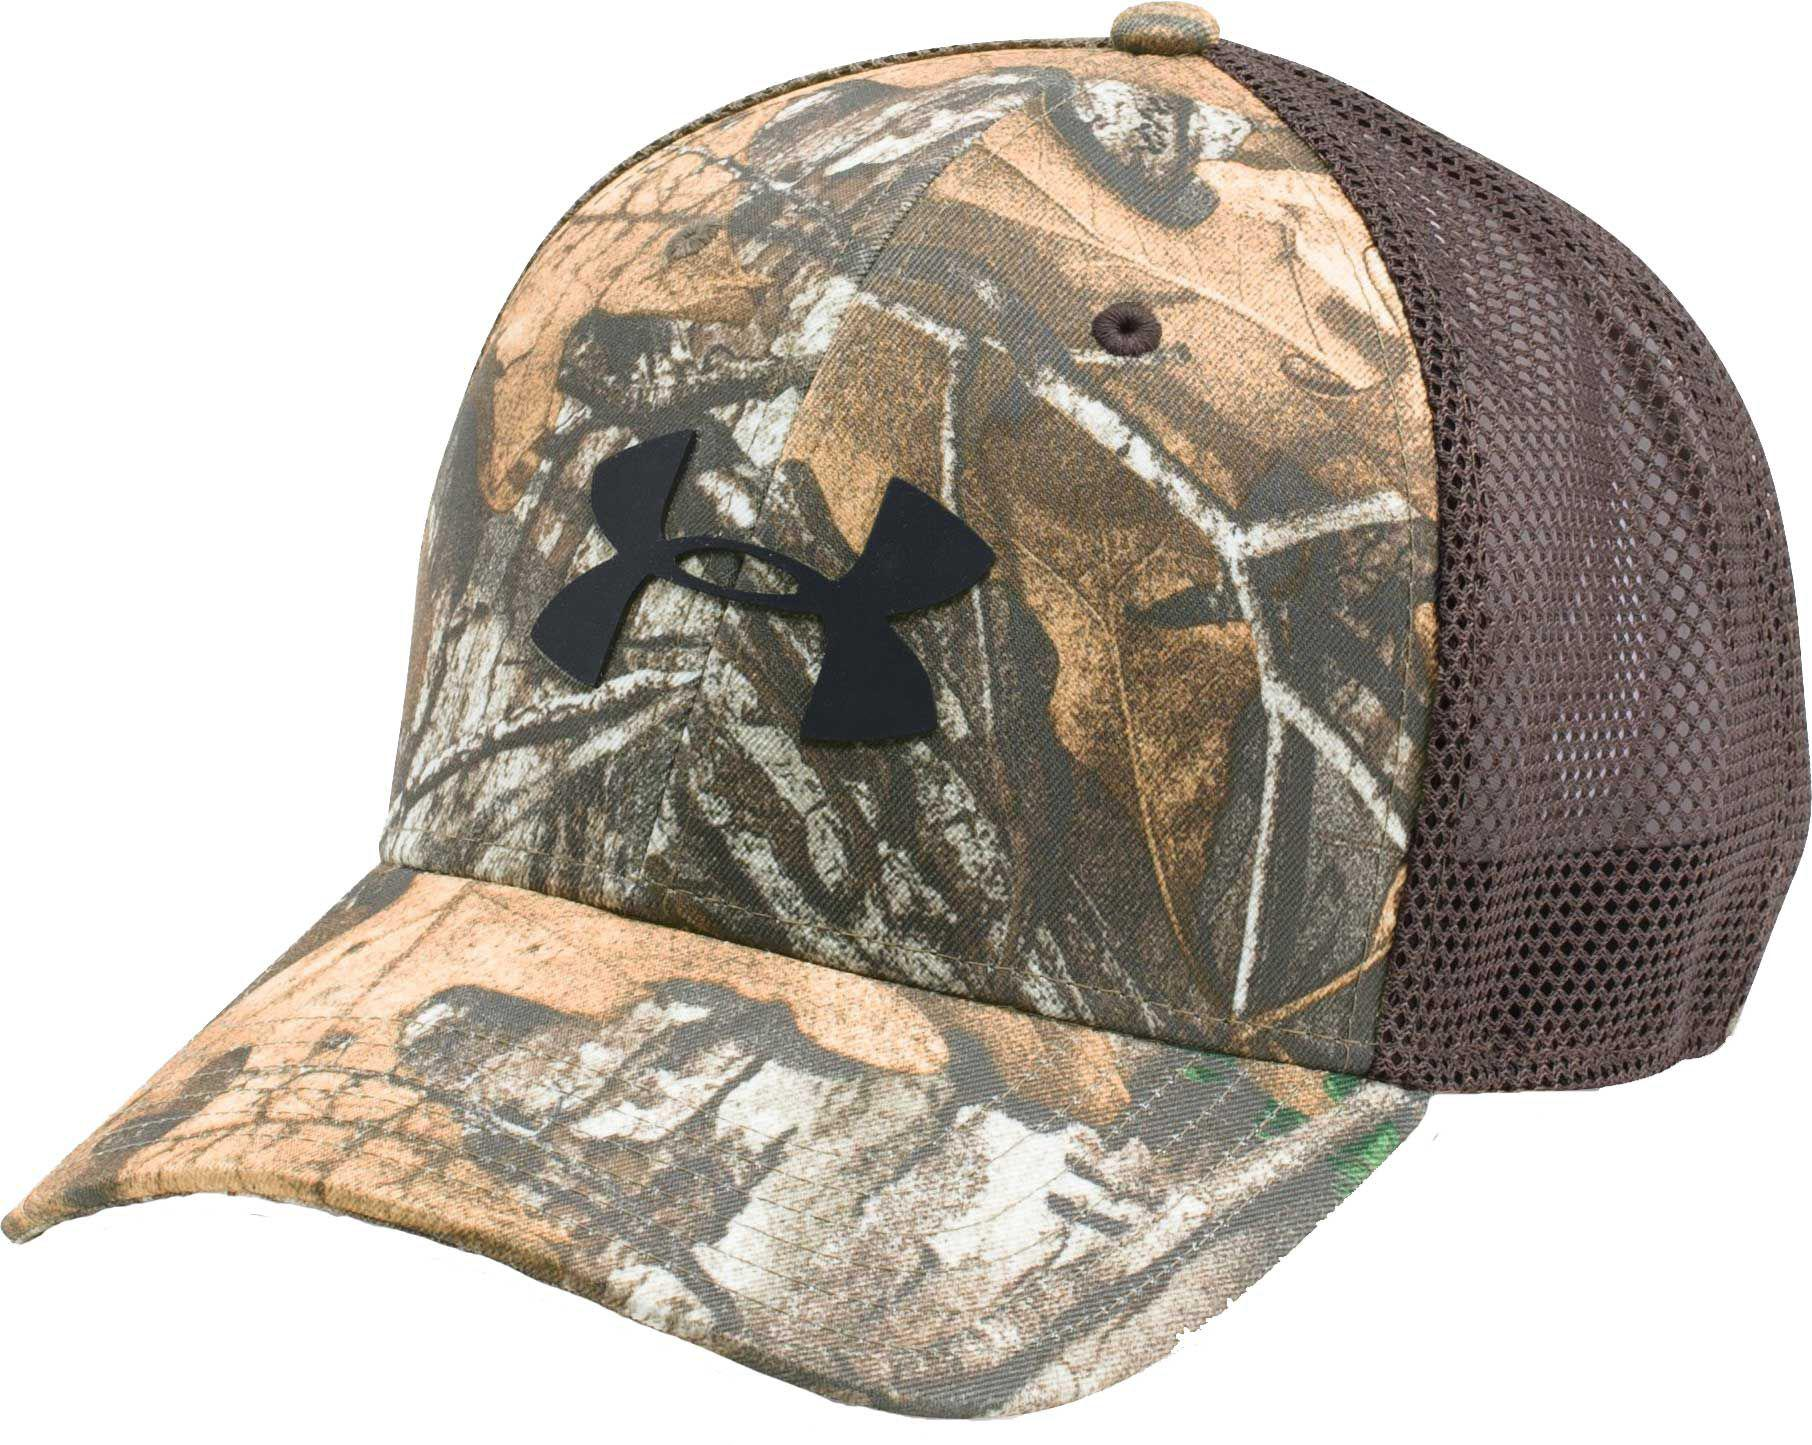 Lyst - Under Armour Camo Mesh 2.0 Hat for Men 14b5efd6f0a0